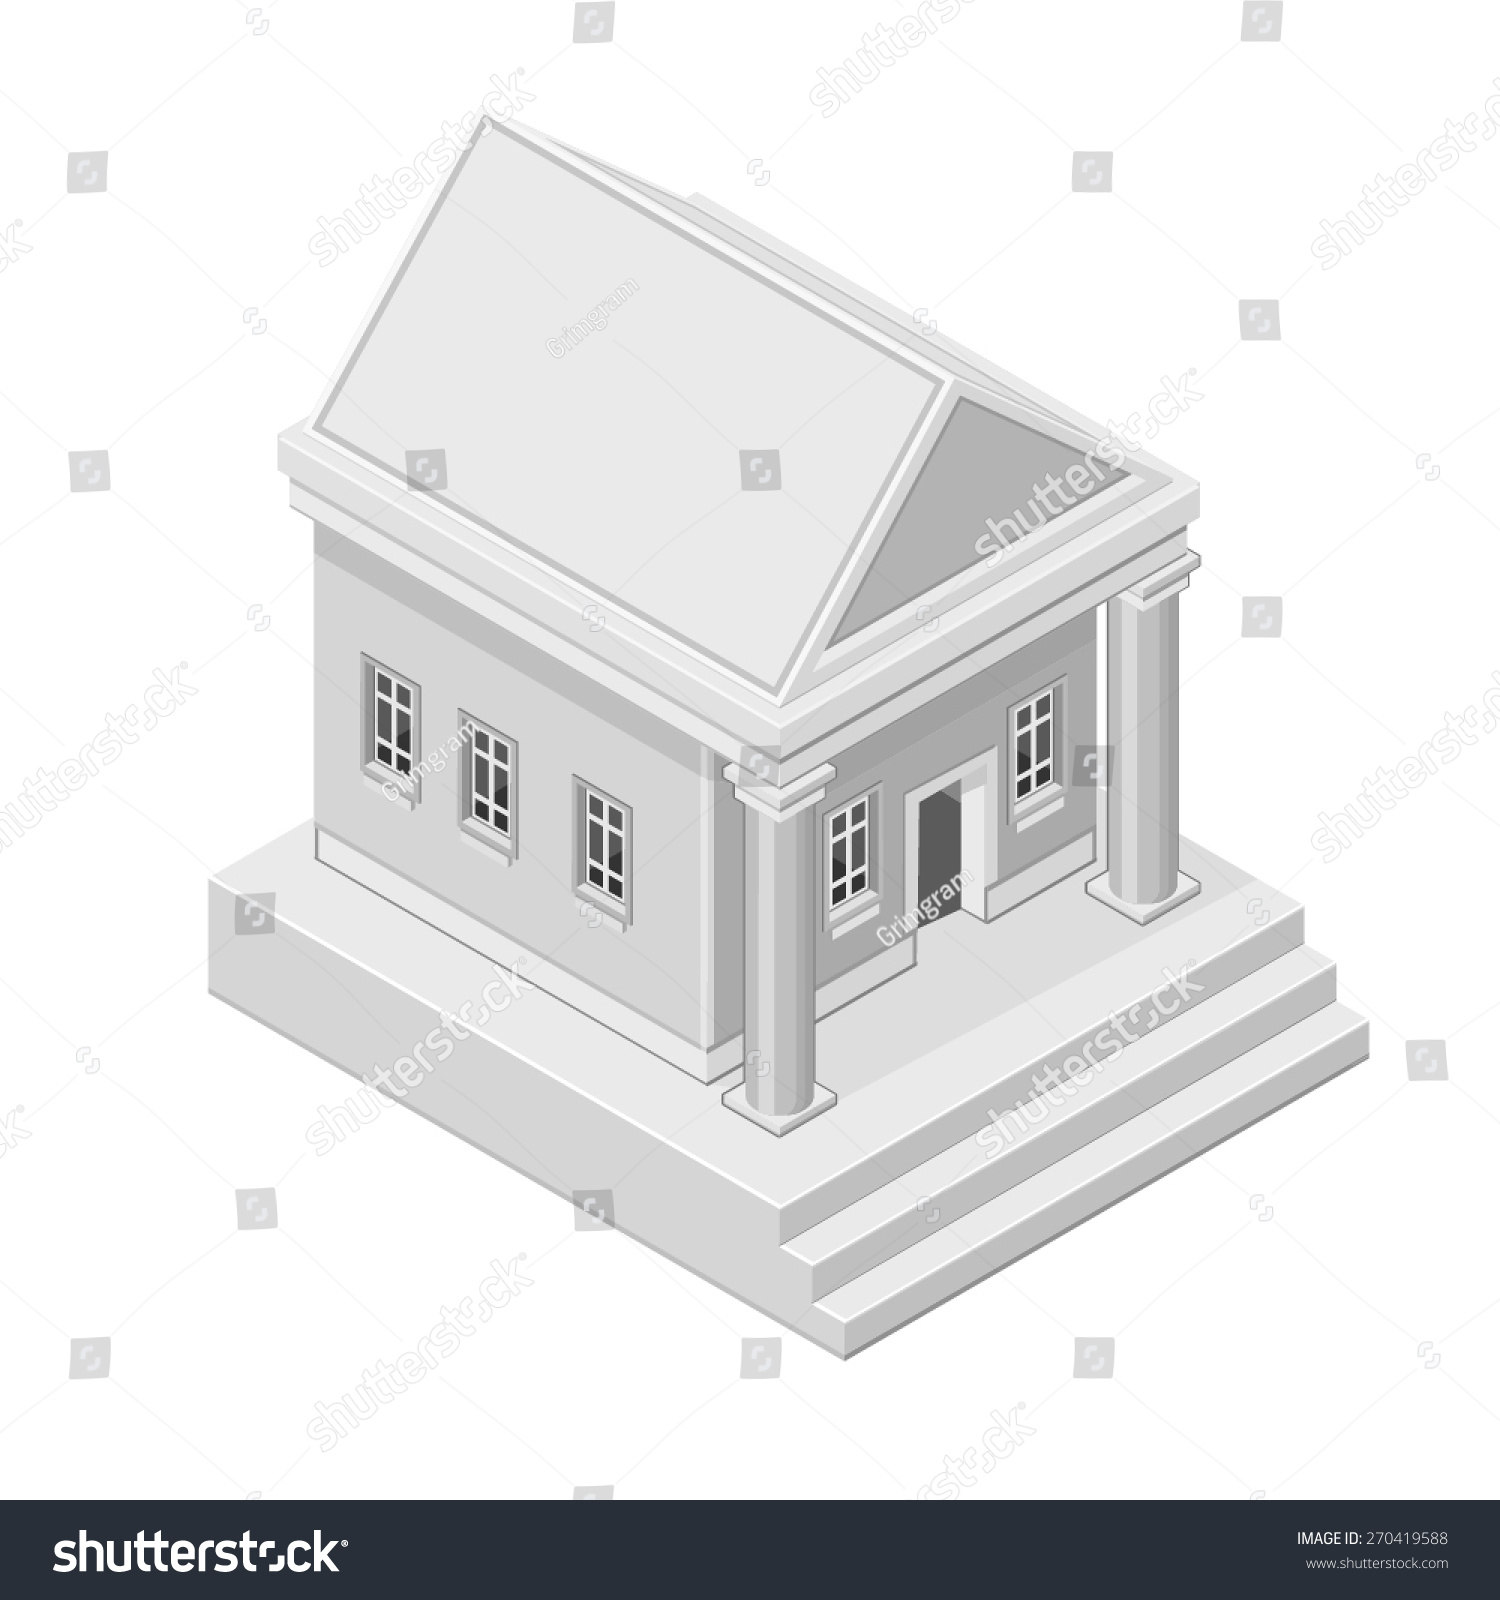 Vector illustration old fashioned bank icon isometric stock vector a vector illustration of an old fashioned bank icon isometric bank symbol for banking biocorpaavc Gallery